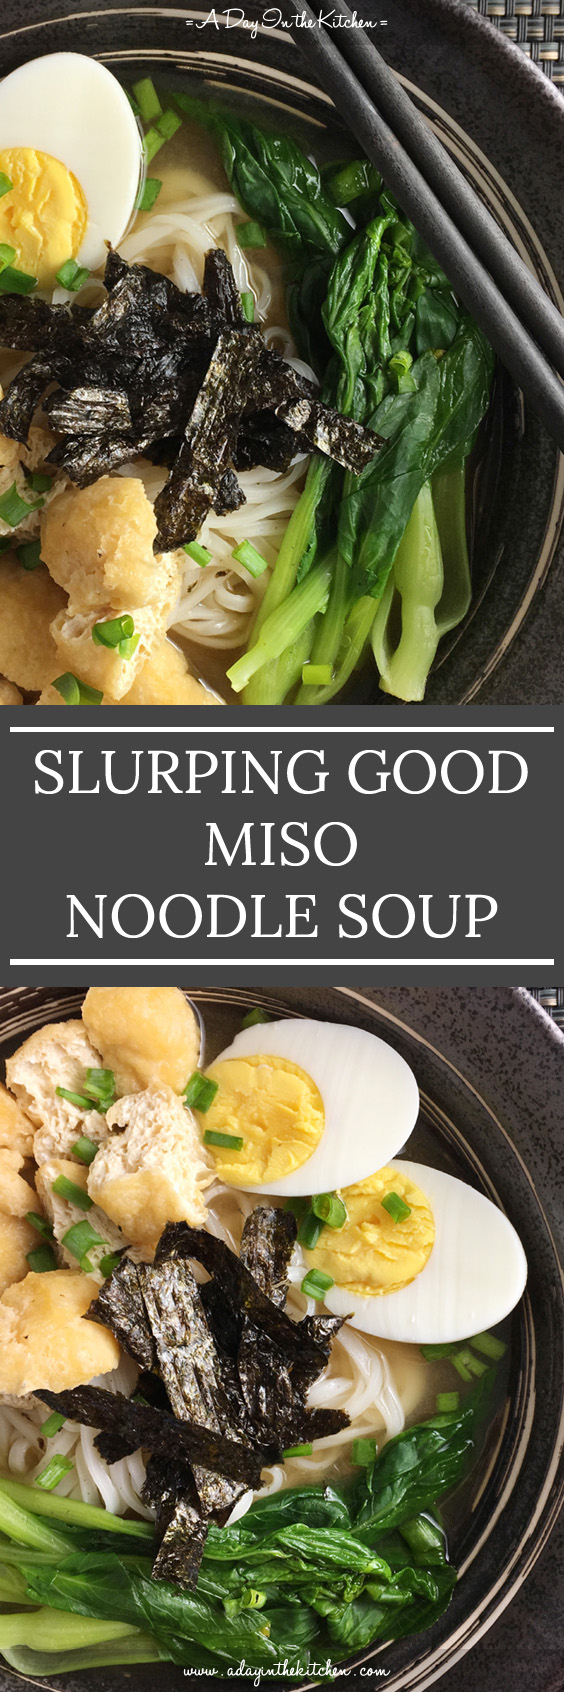 Who wouldn't love a bowl of Slurping Good Miso Noodle Soup? Topped with eggs, tofu puffs, dried seaweed, pork, greens..it's a perfect rich bowl of comfort! #miso #misonoodlesoup #noodlesoup #ramen #noodles #soup